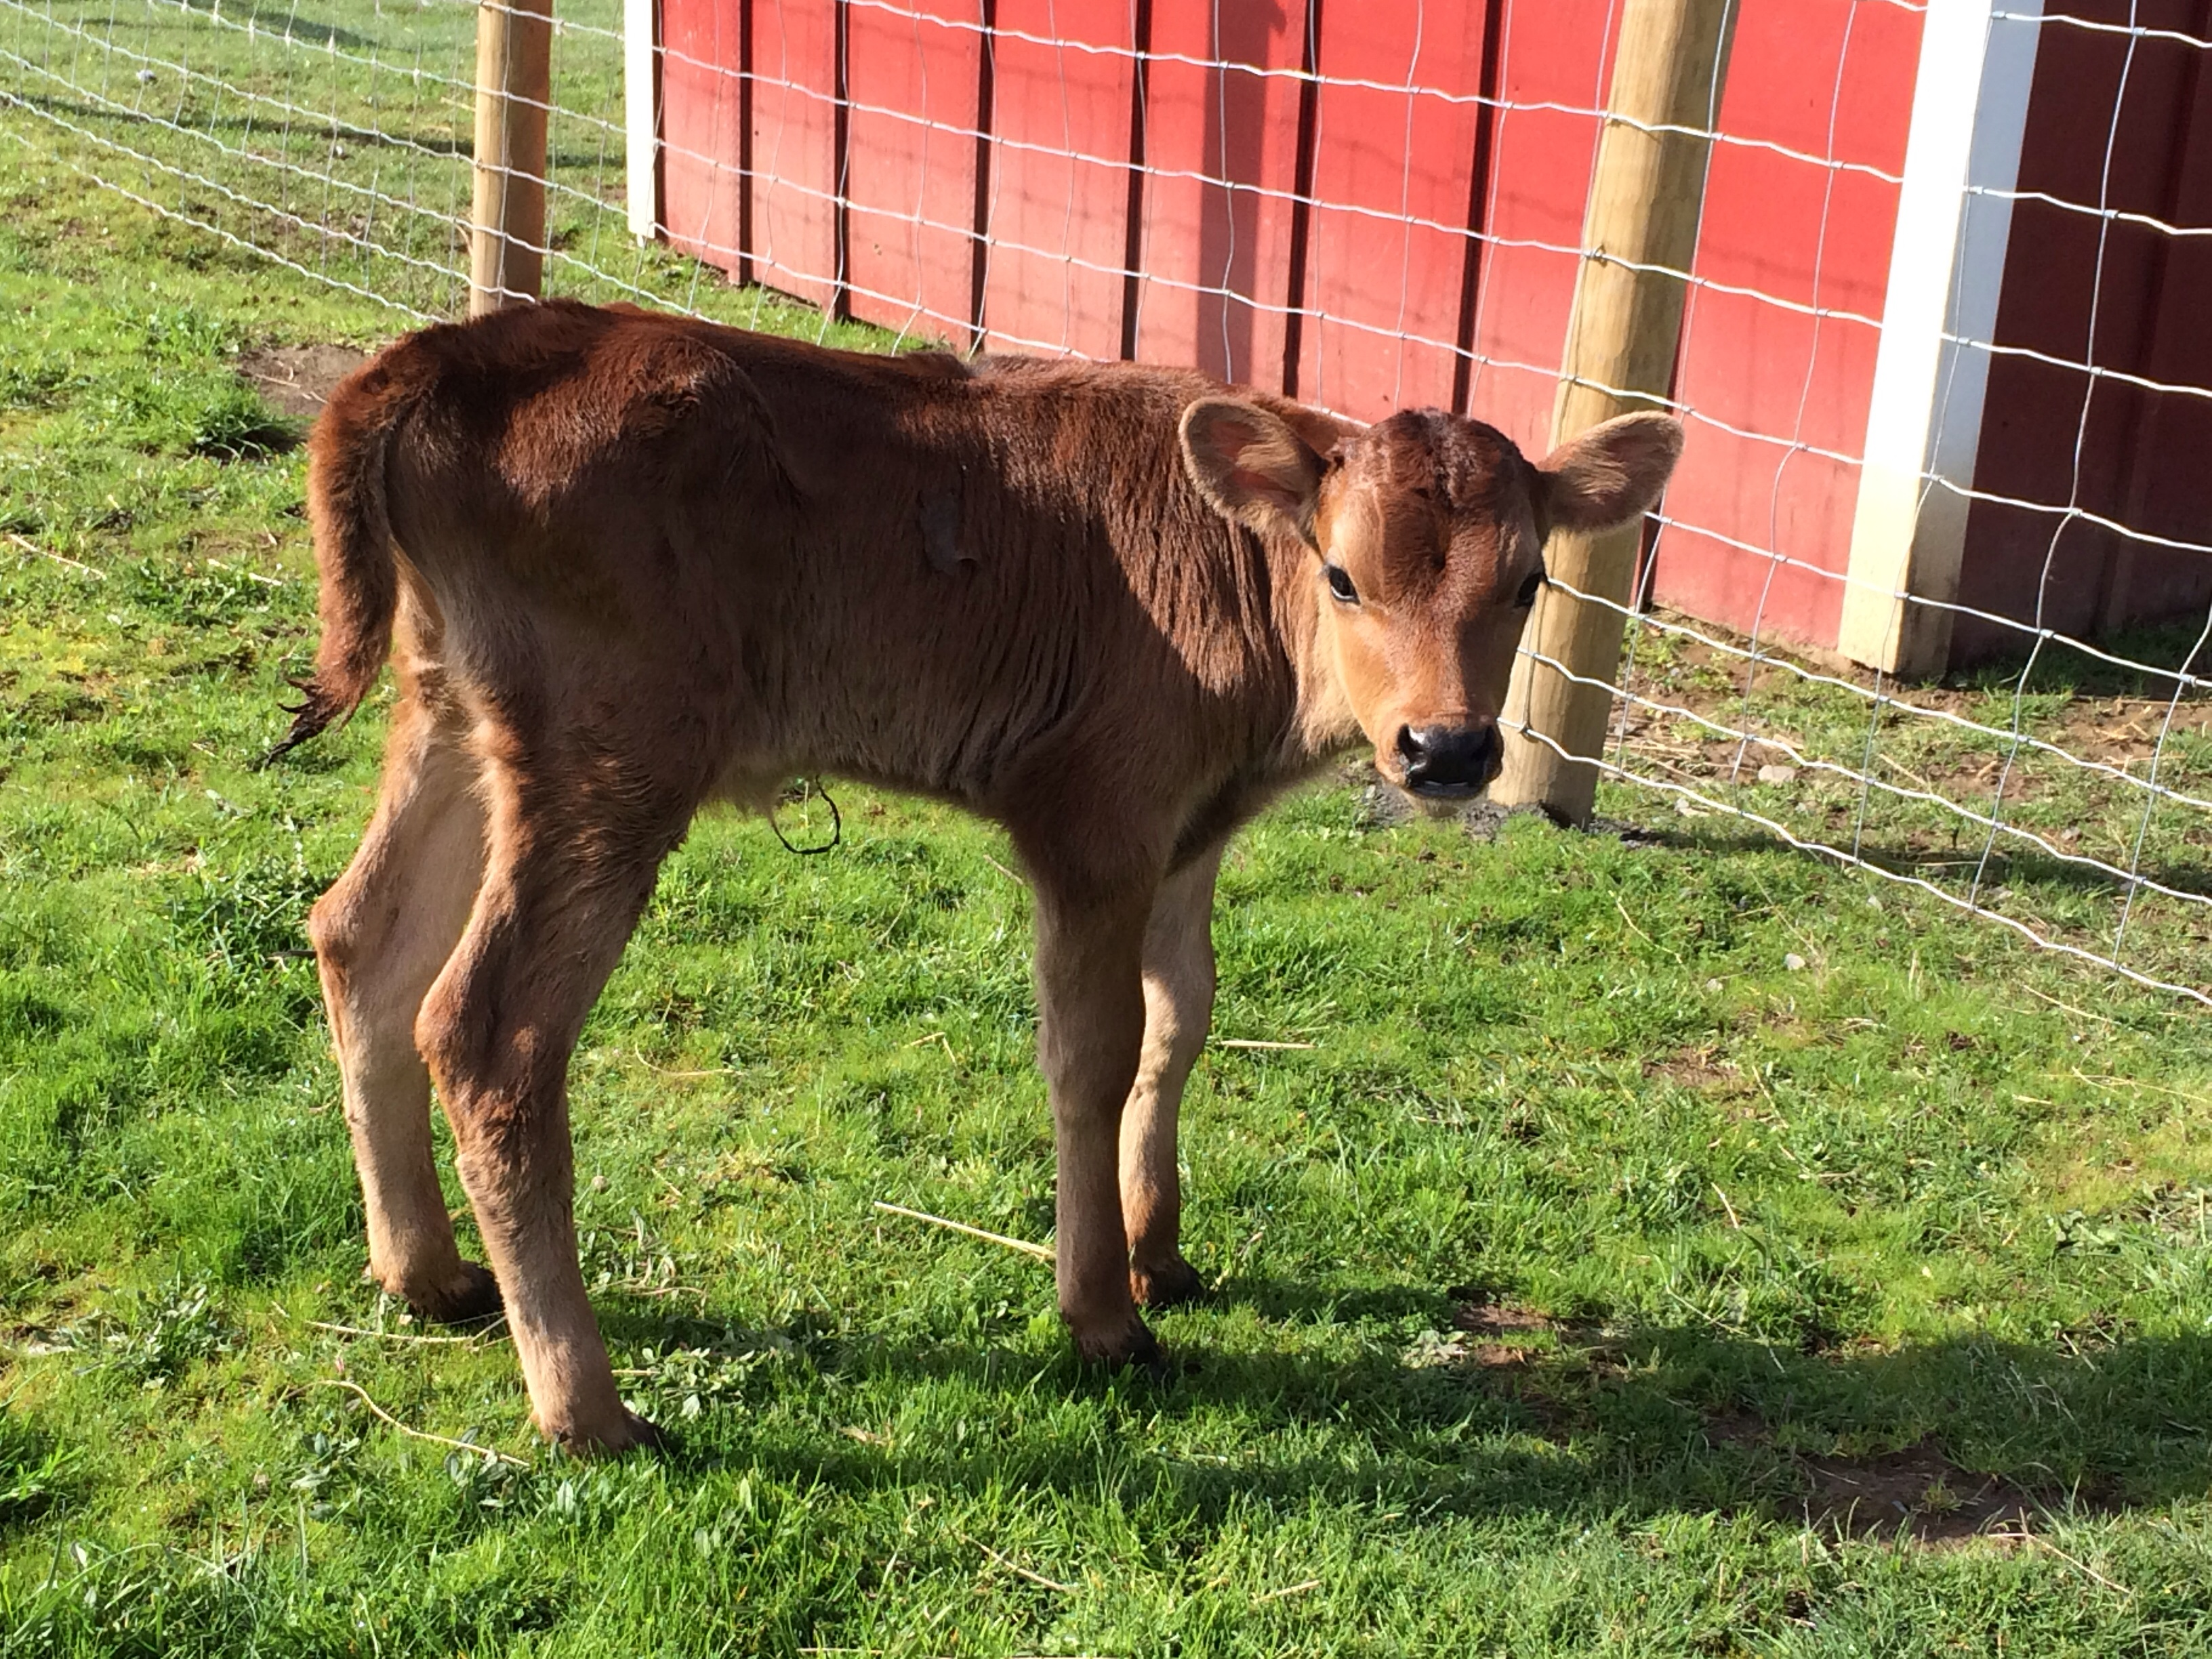 Hershey the rescued calf